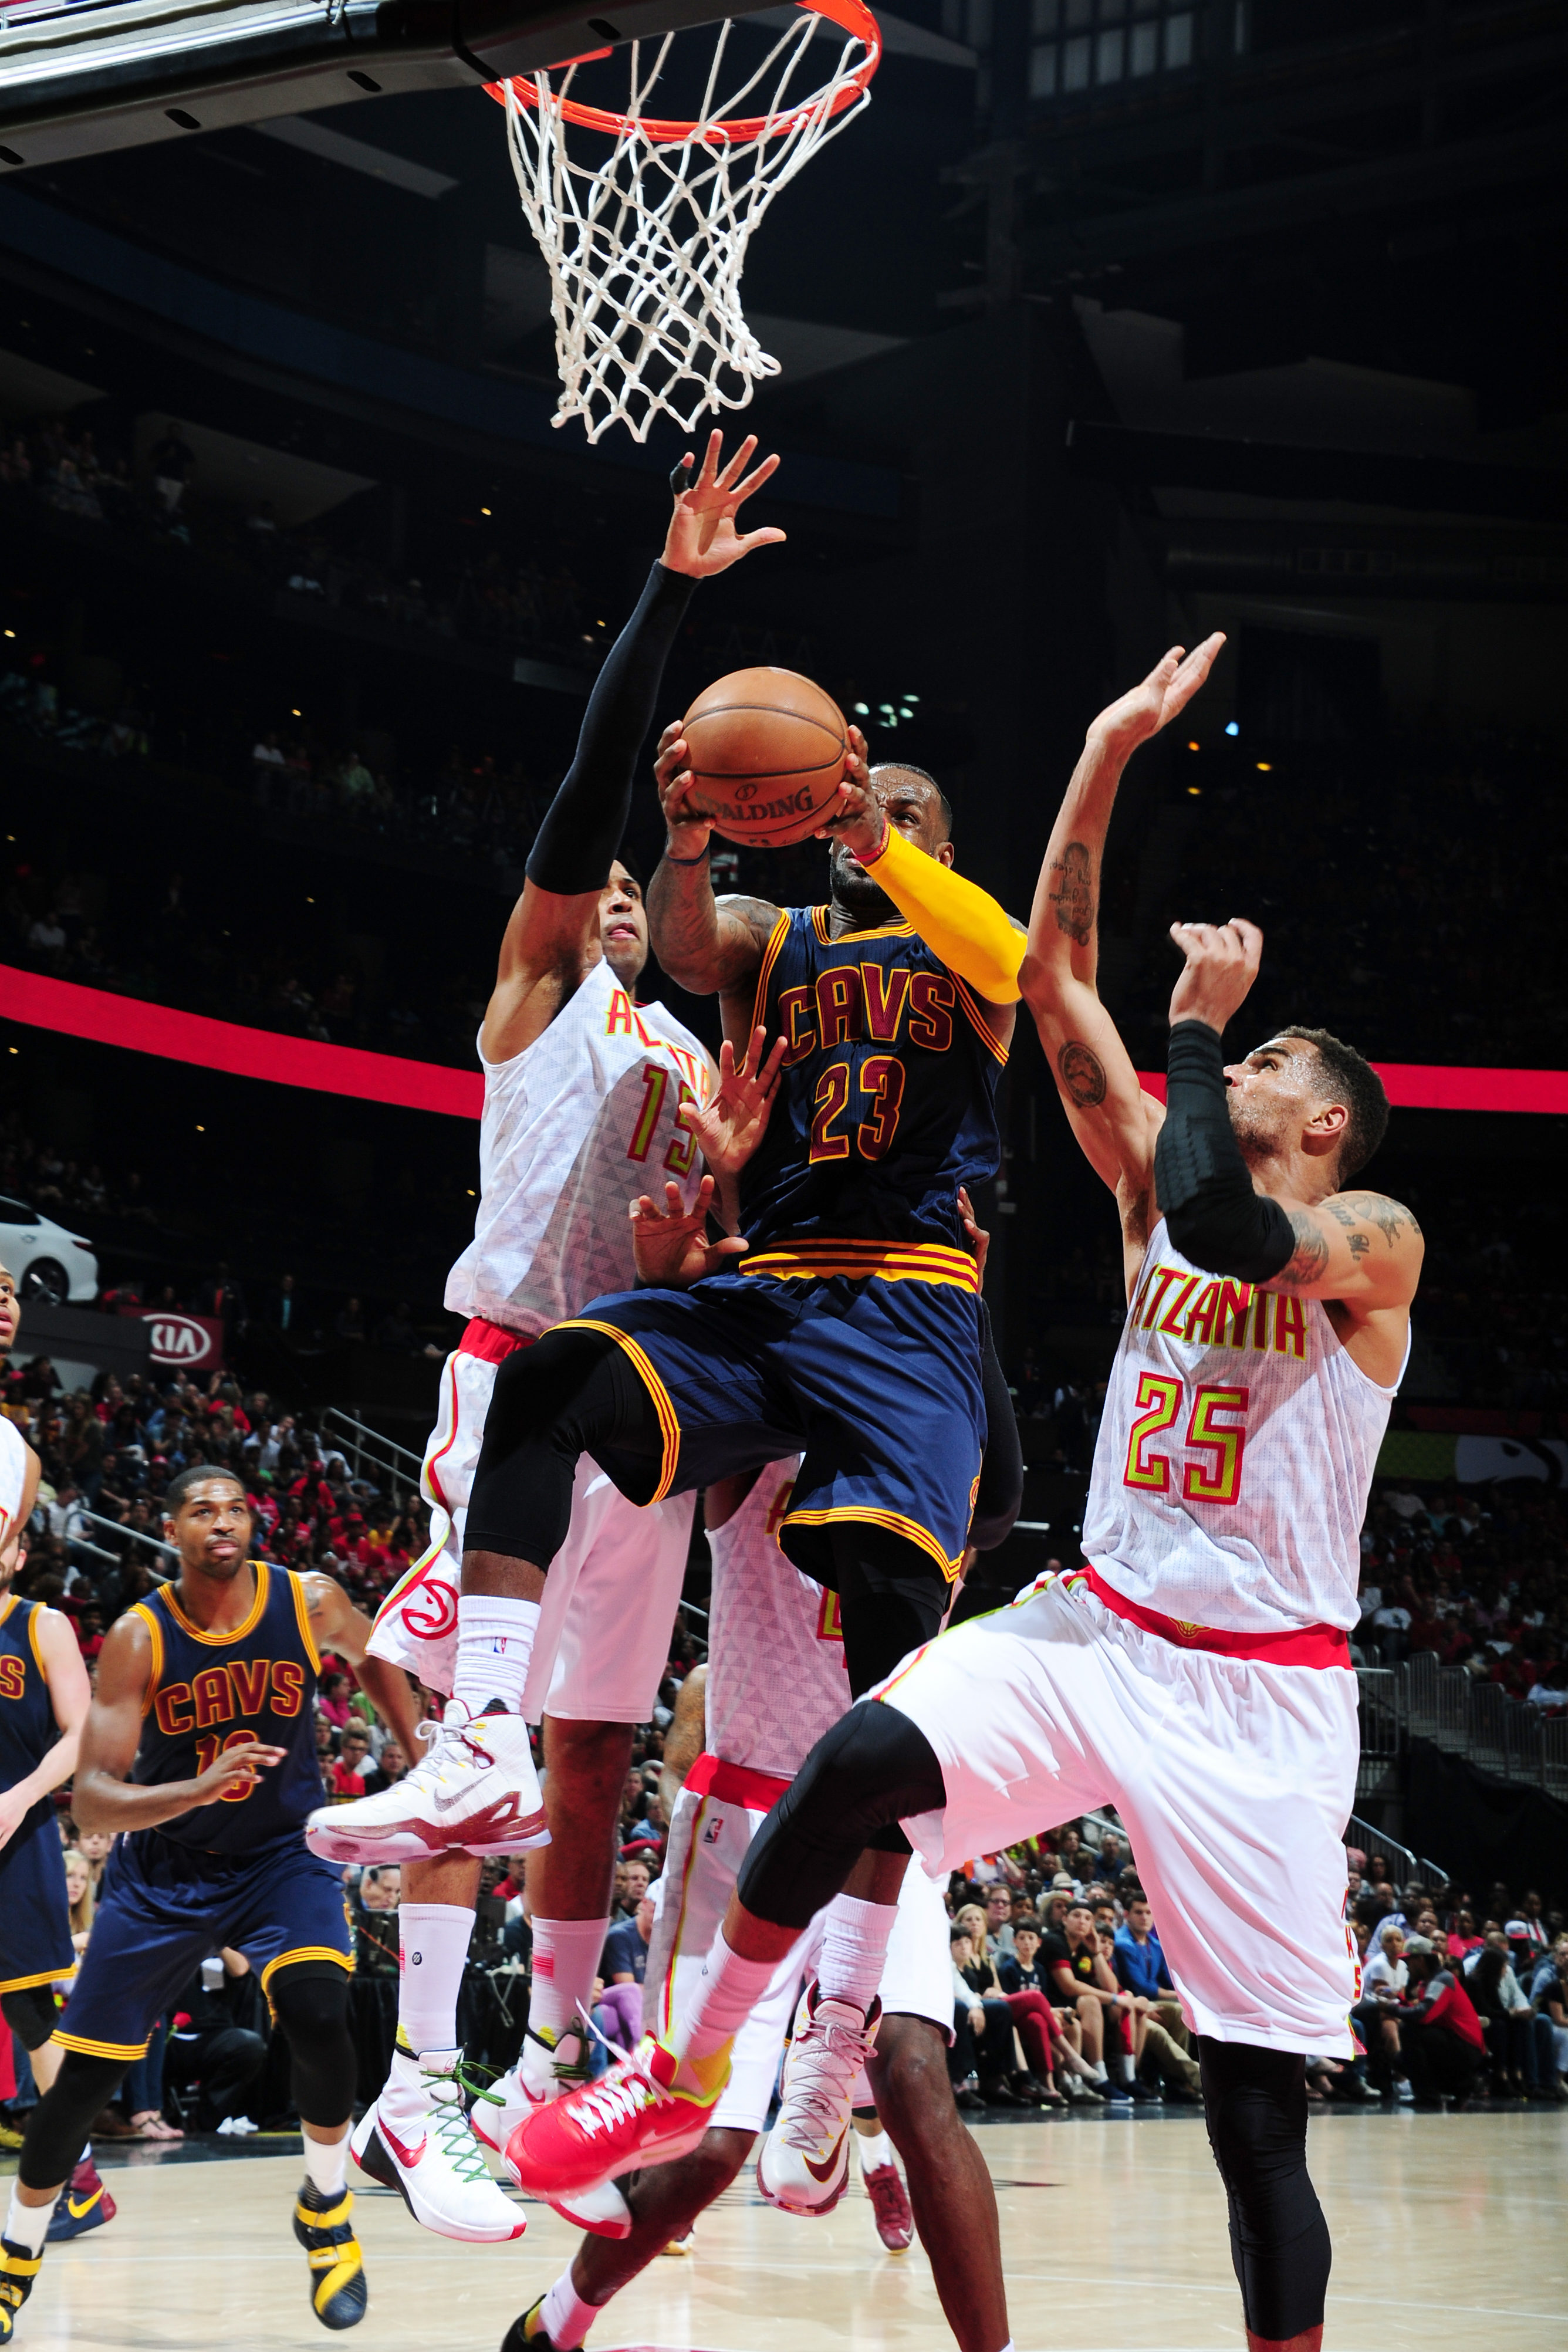 ATLANTA, GA - MAY 8: LeBron James #23 of the Cleveland Cavaliers goes for the lay up against the Atlanta Hawks during Game Three of the Eastern Conference Semifinals during the 2016 NBA Playoffs on May 8, 2016 at Philips Arena in Cleveland, Ohio. (Photo b